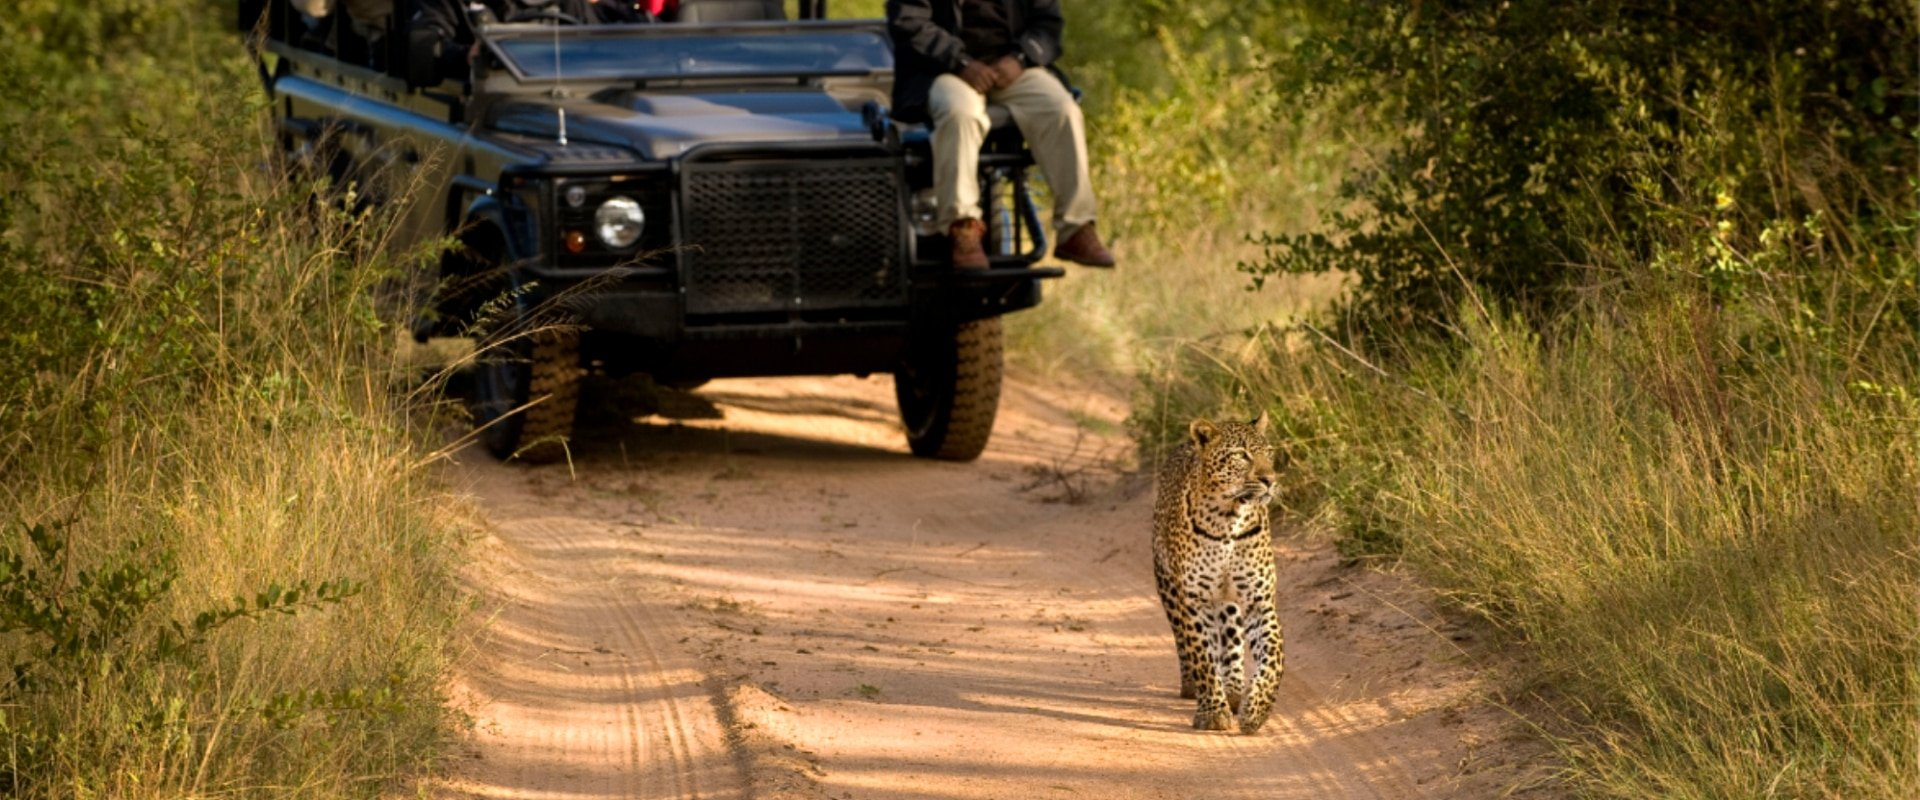 Watch the awesome spectacle of wildlife in their habitat on a game drive